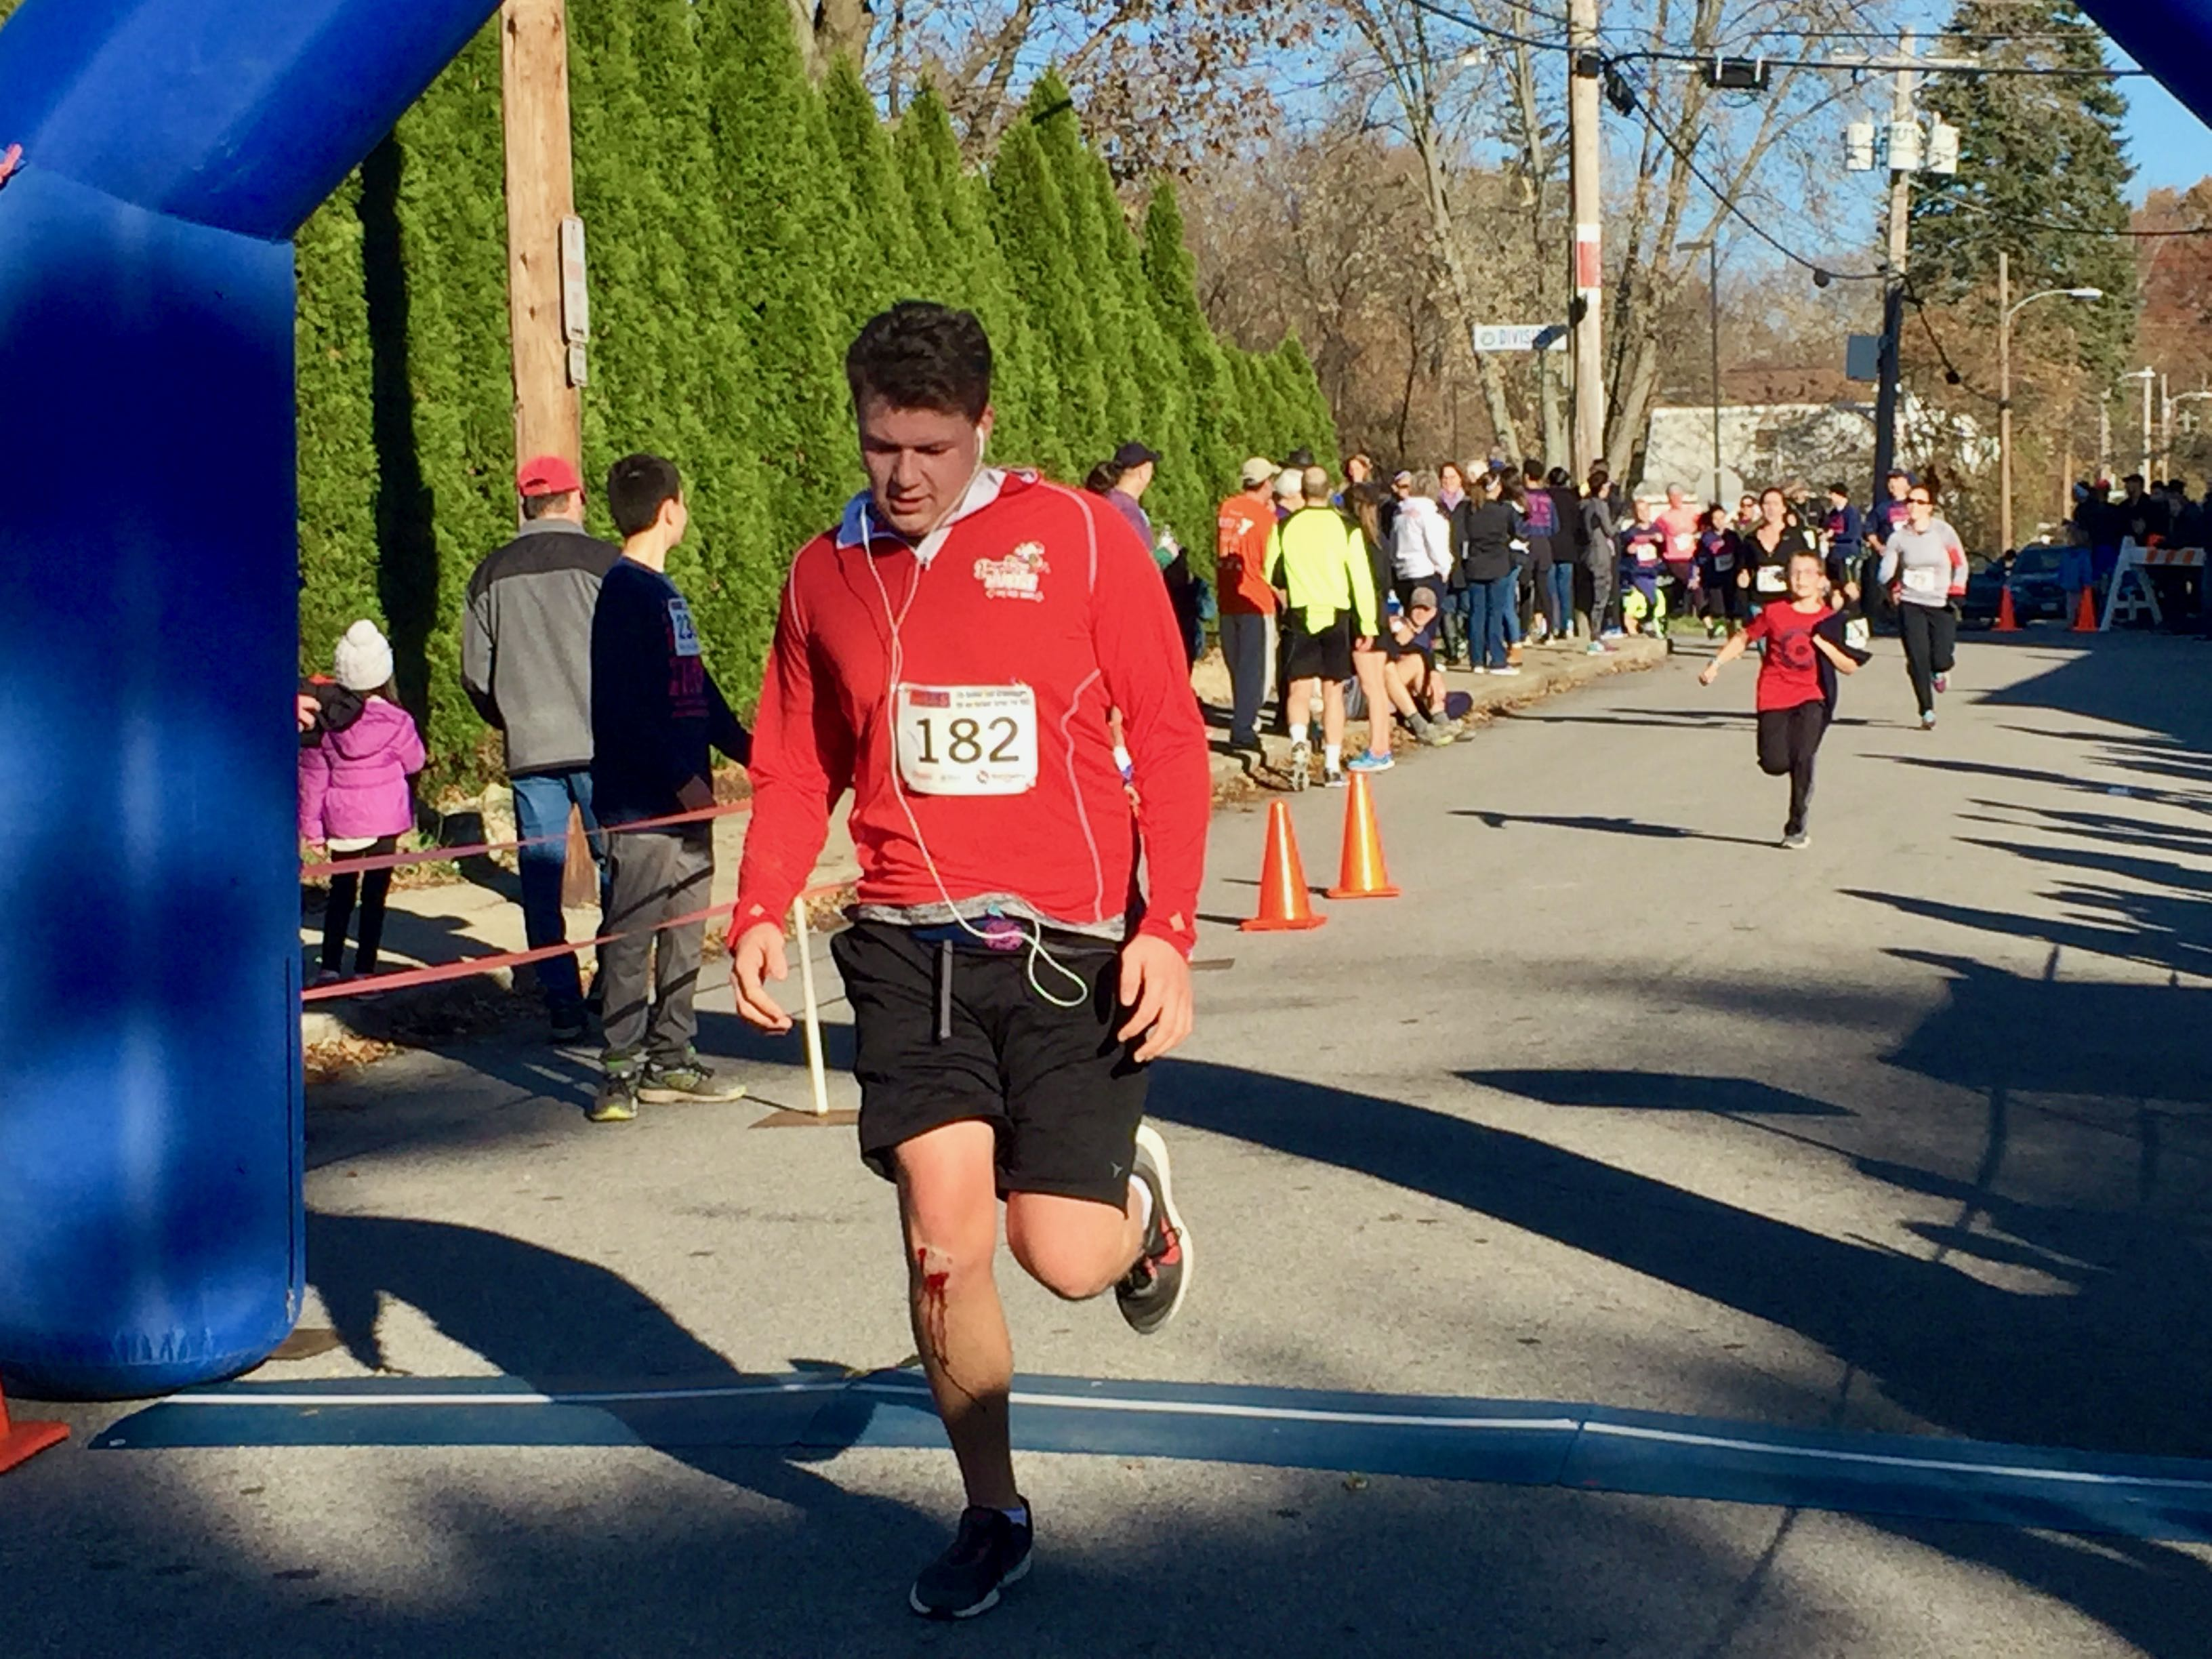 Turkey Trot finisher Axel Lindquist, 17, of East Greenwich